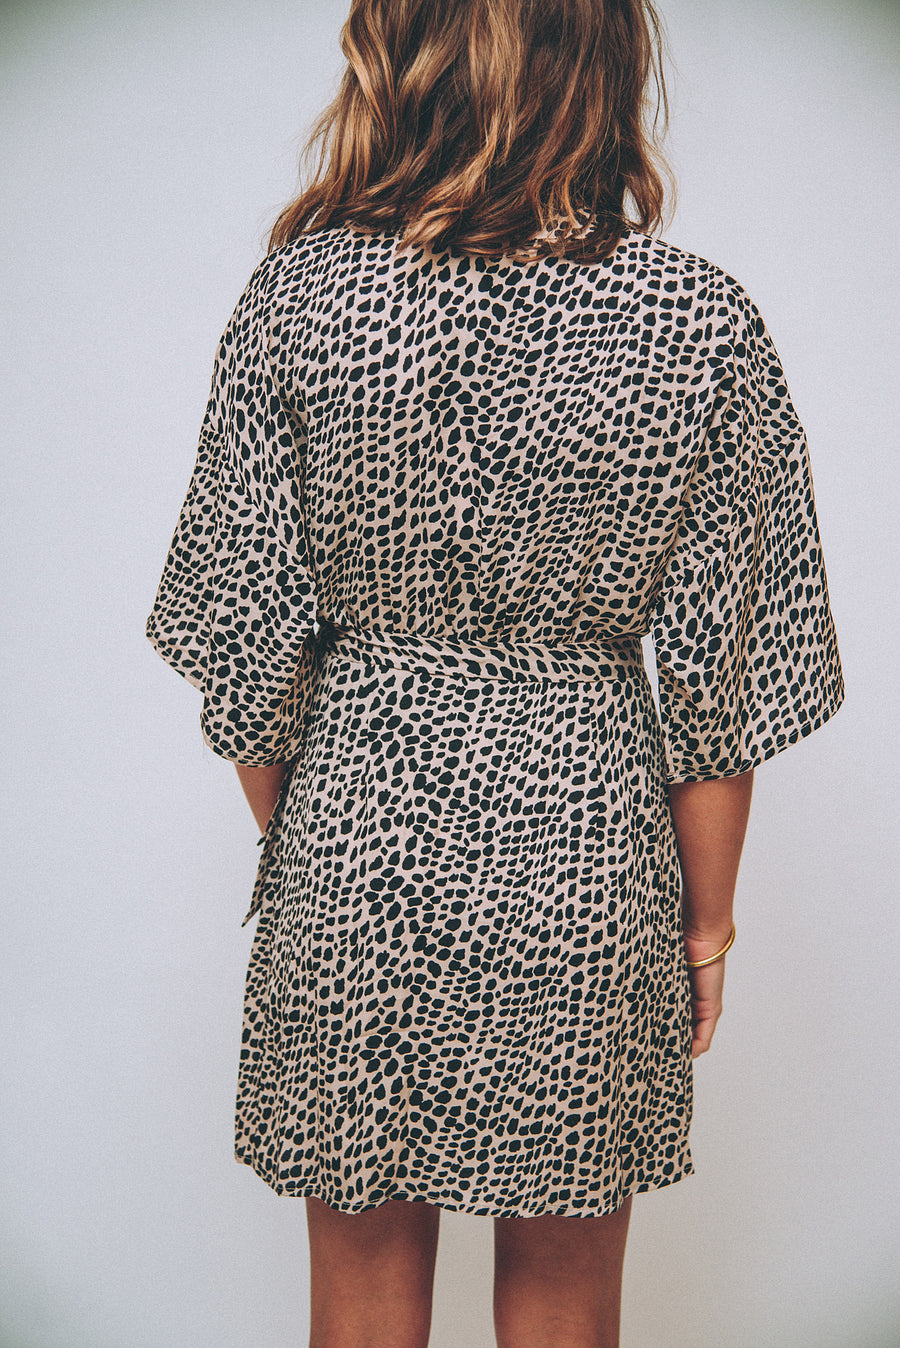 HOT NIGHTS CHEETAH WRAP DRESS